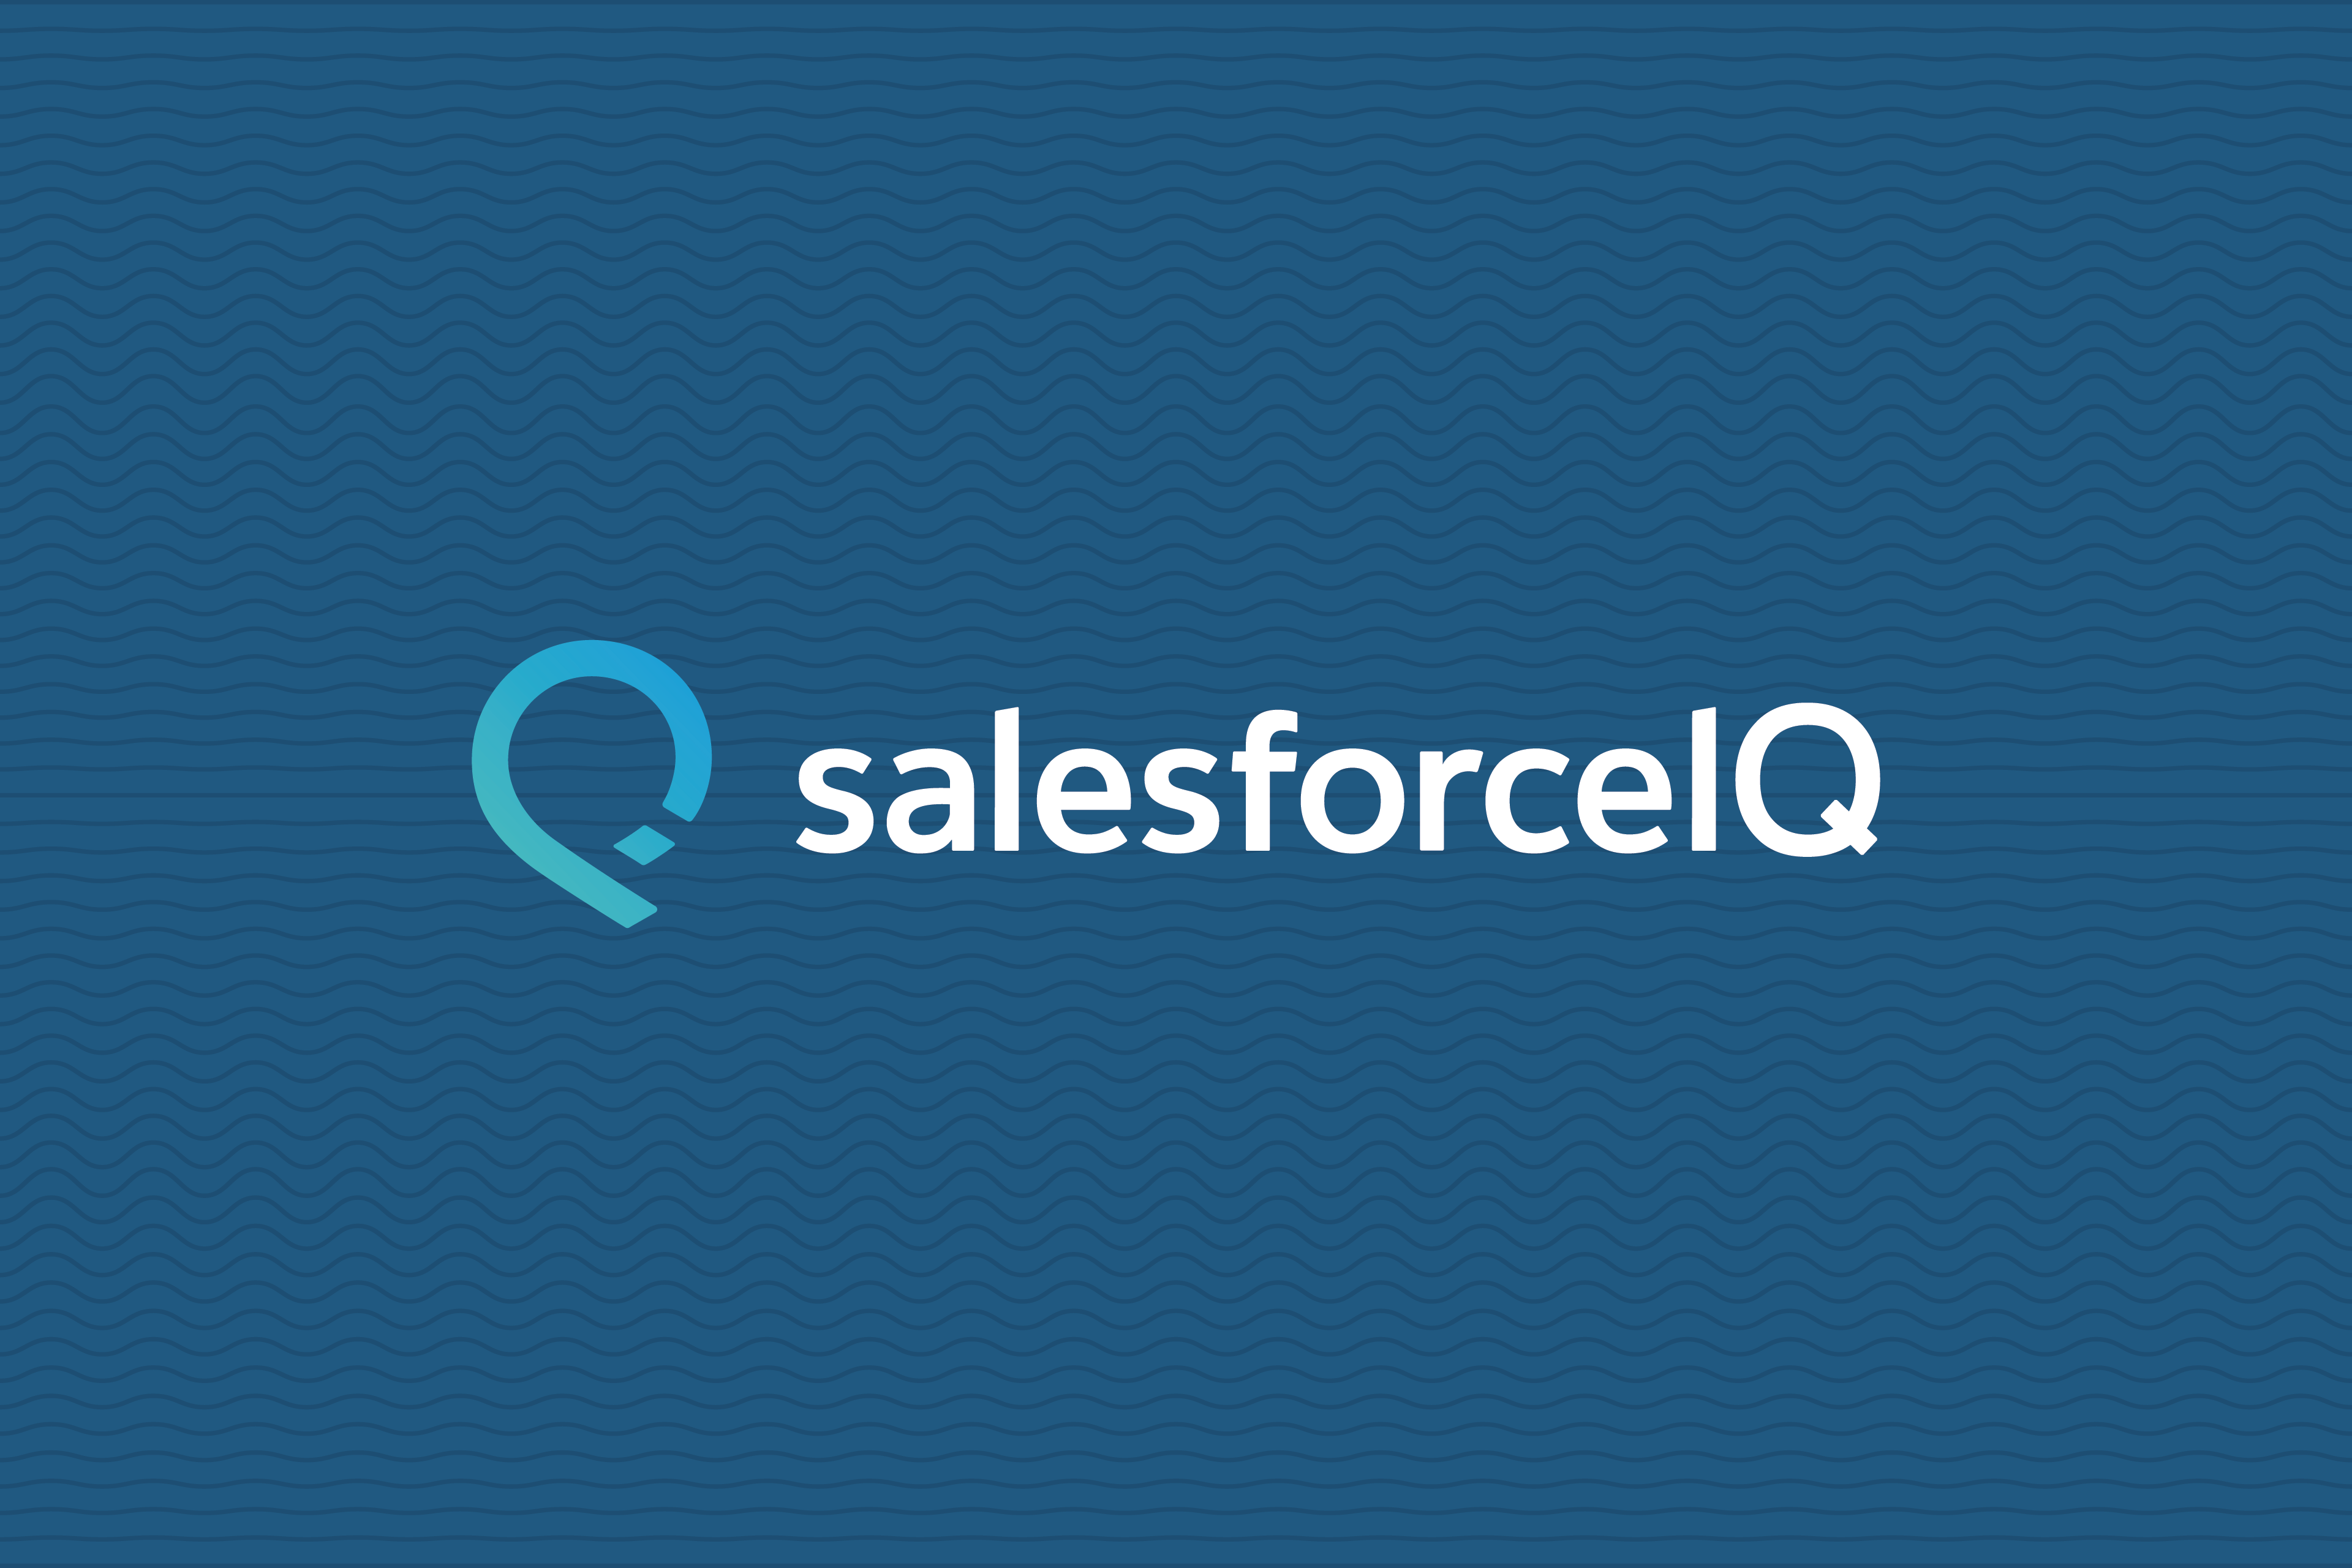 SalesforceIQ - Contact Gallery